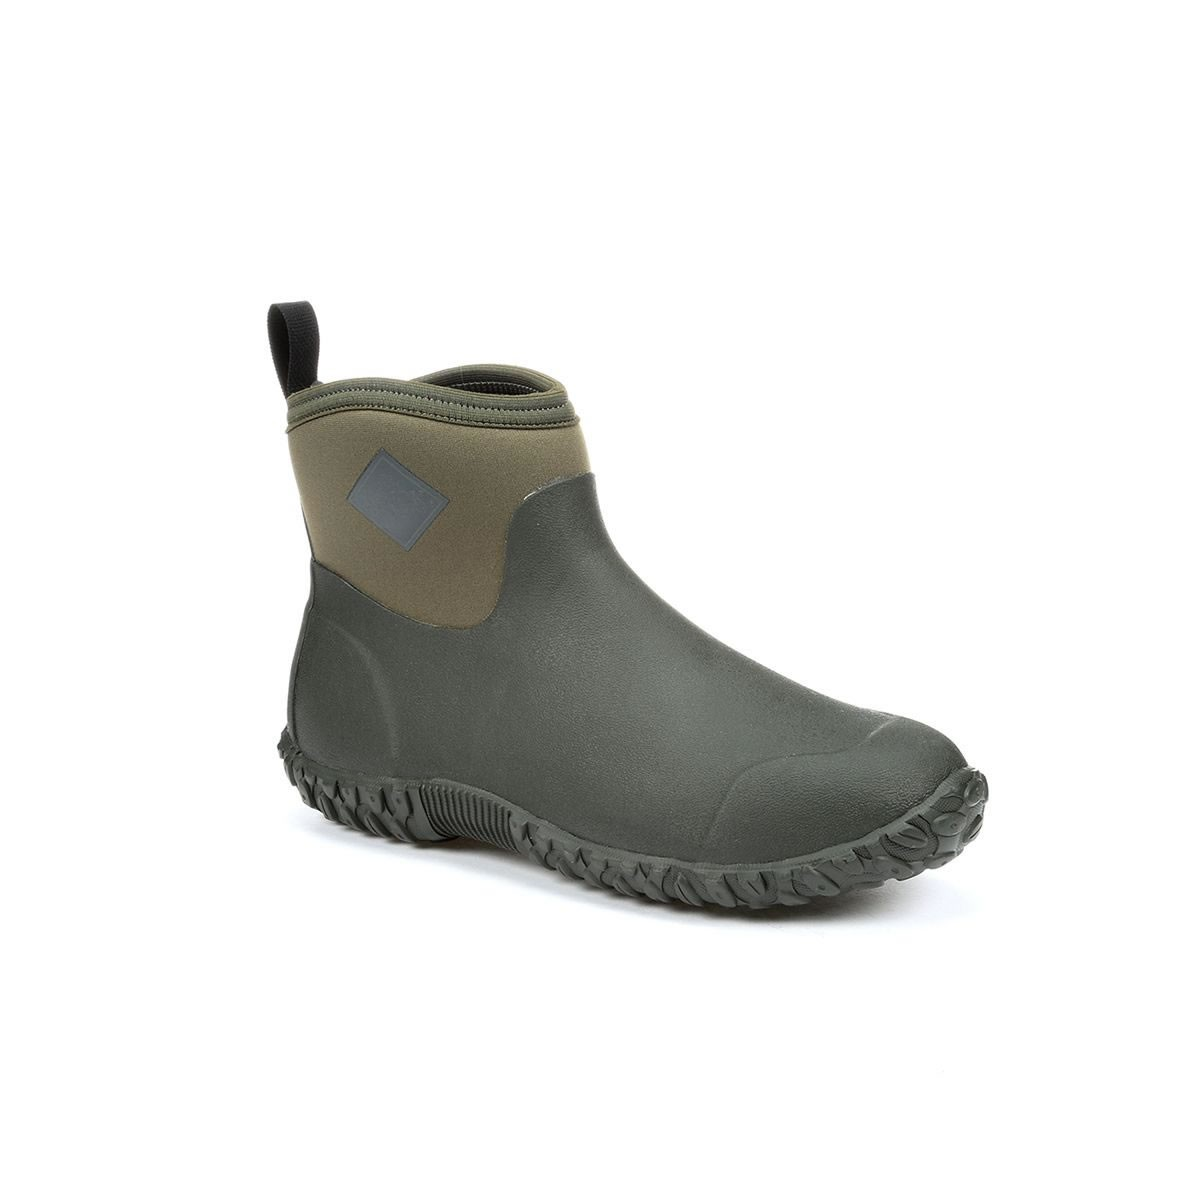 Muck Boot Mens Muckster Ankle Moss Size 11 UK